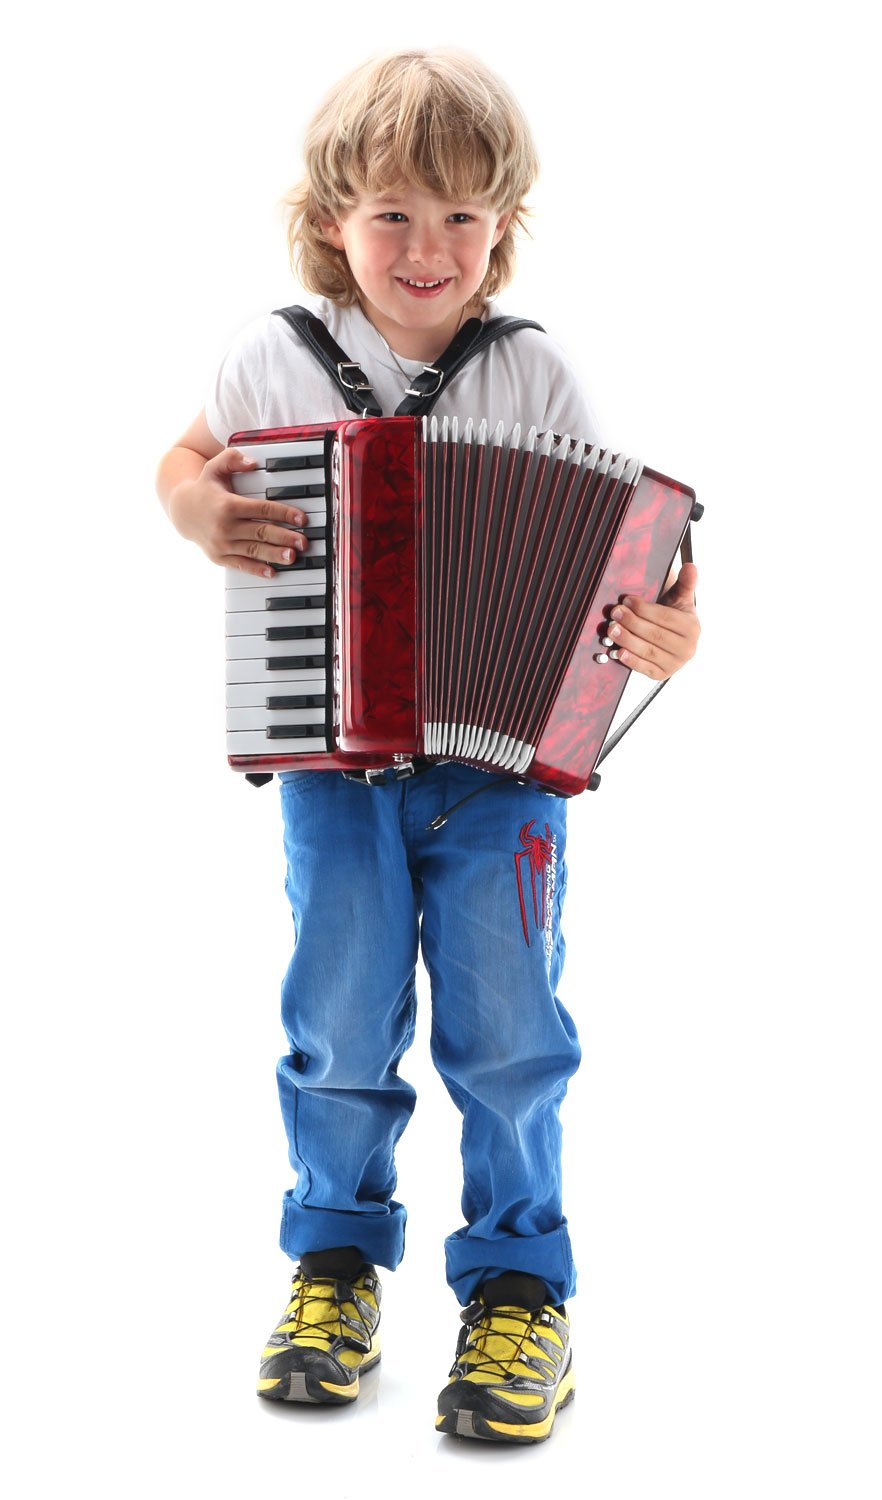 Classic Cantabile Secondo Junior 8 Bass Accordion 22 Treble Keys Eight Bass Keys with Strap and Gig Bag Red by Classic Cantabile (Image #3)